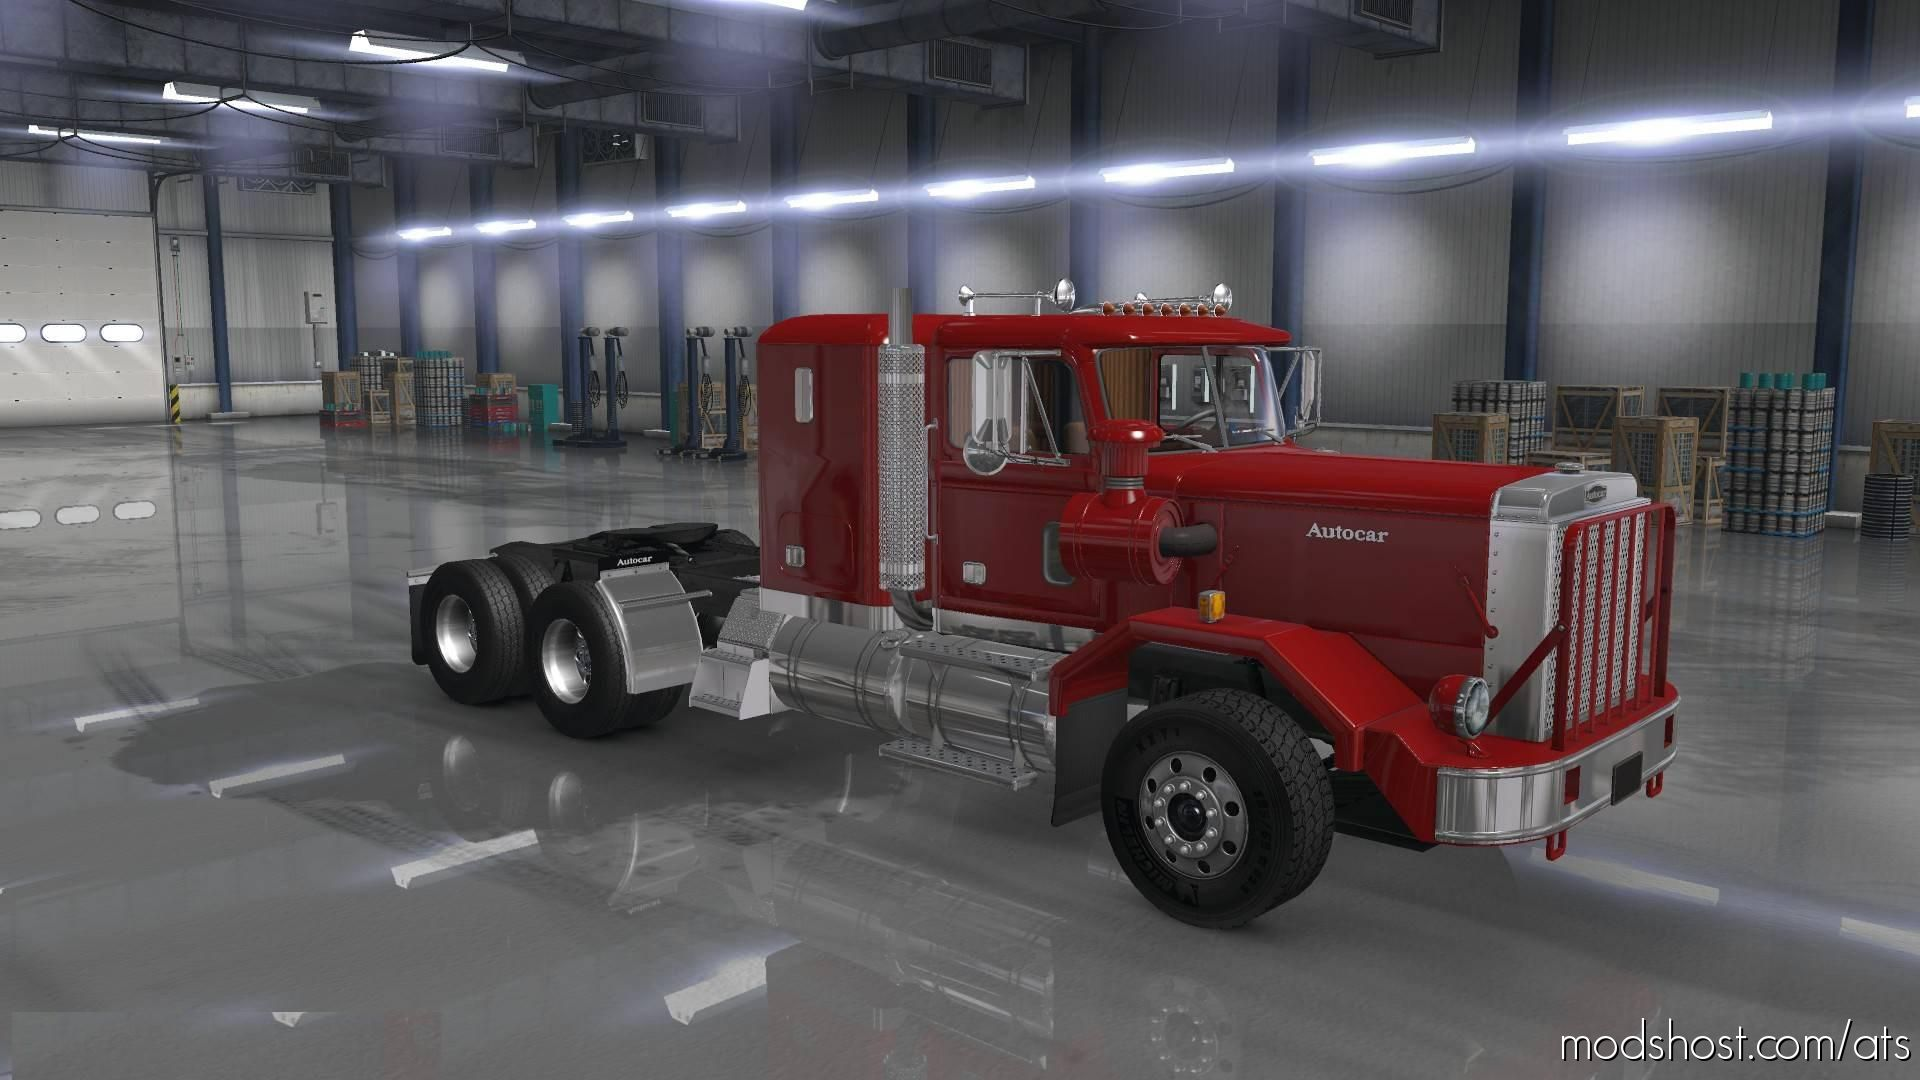 Download autocar dc mod for american truck simulator at